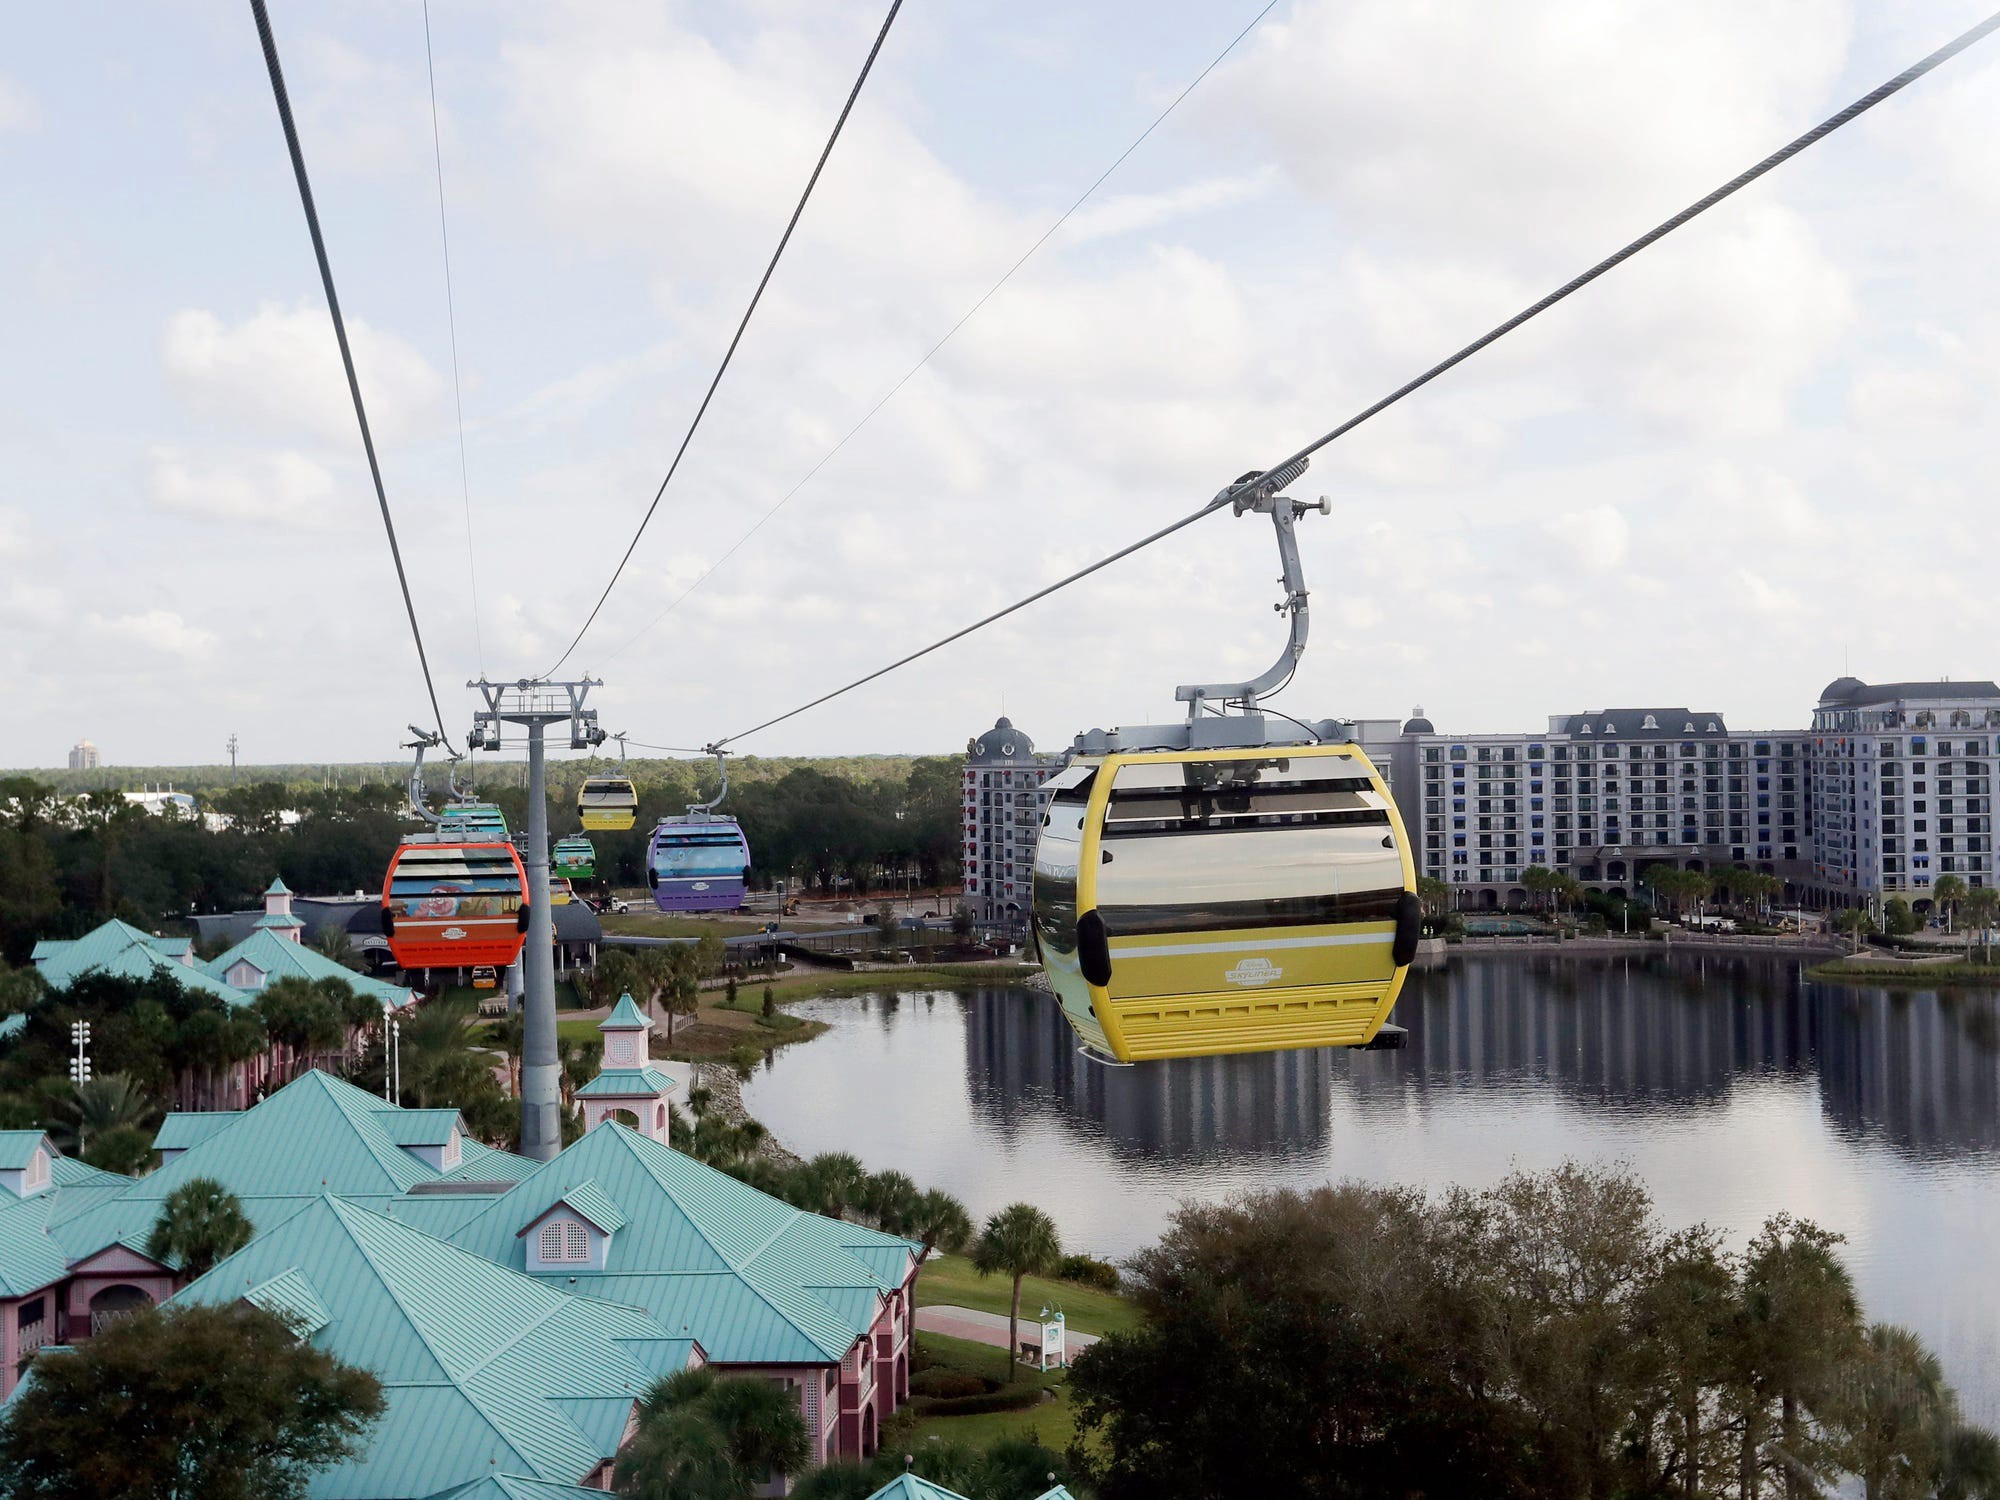 The Skyliner cable cars at Disney World.